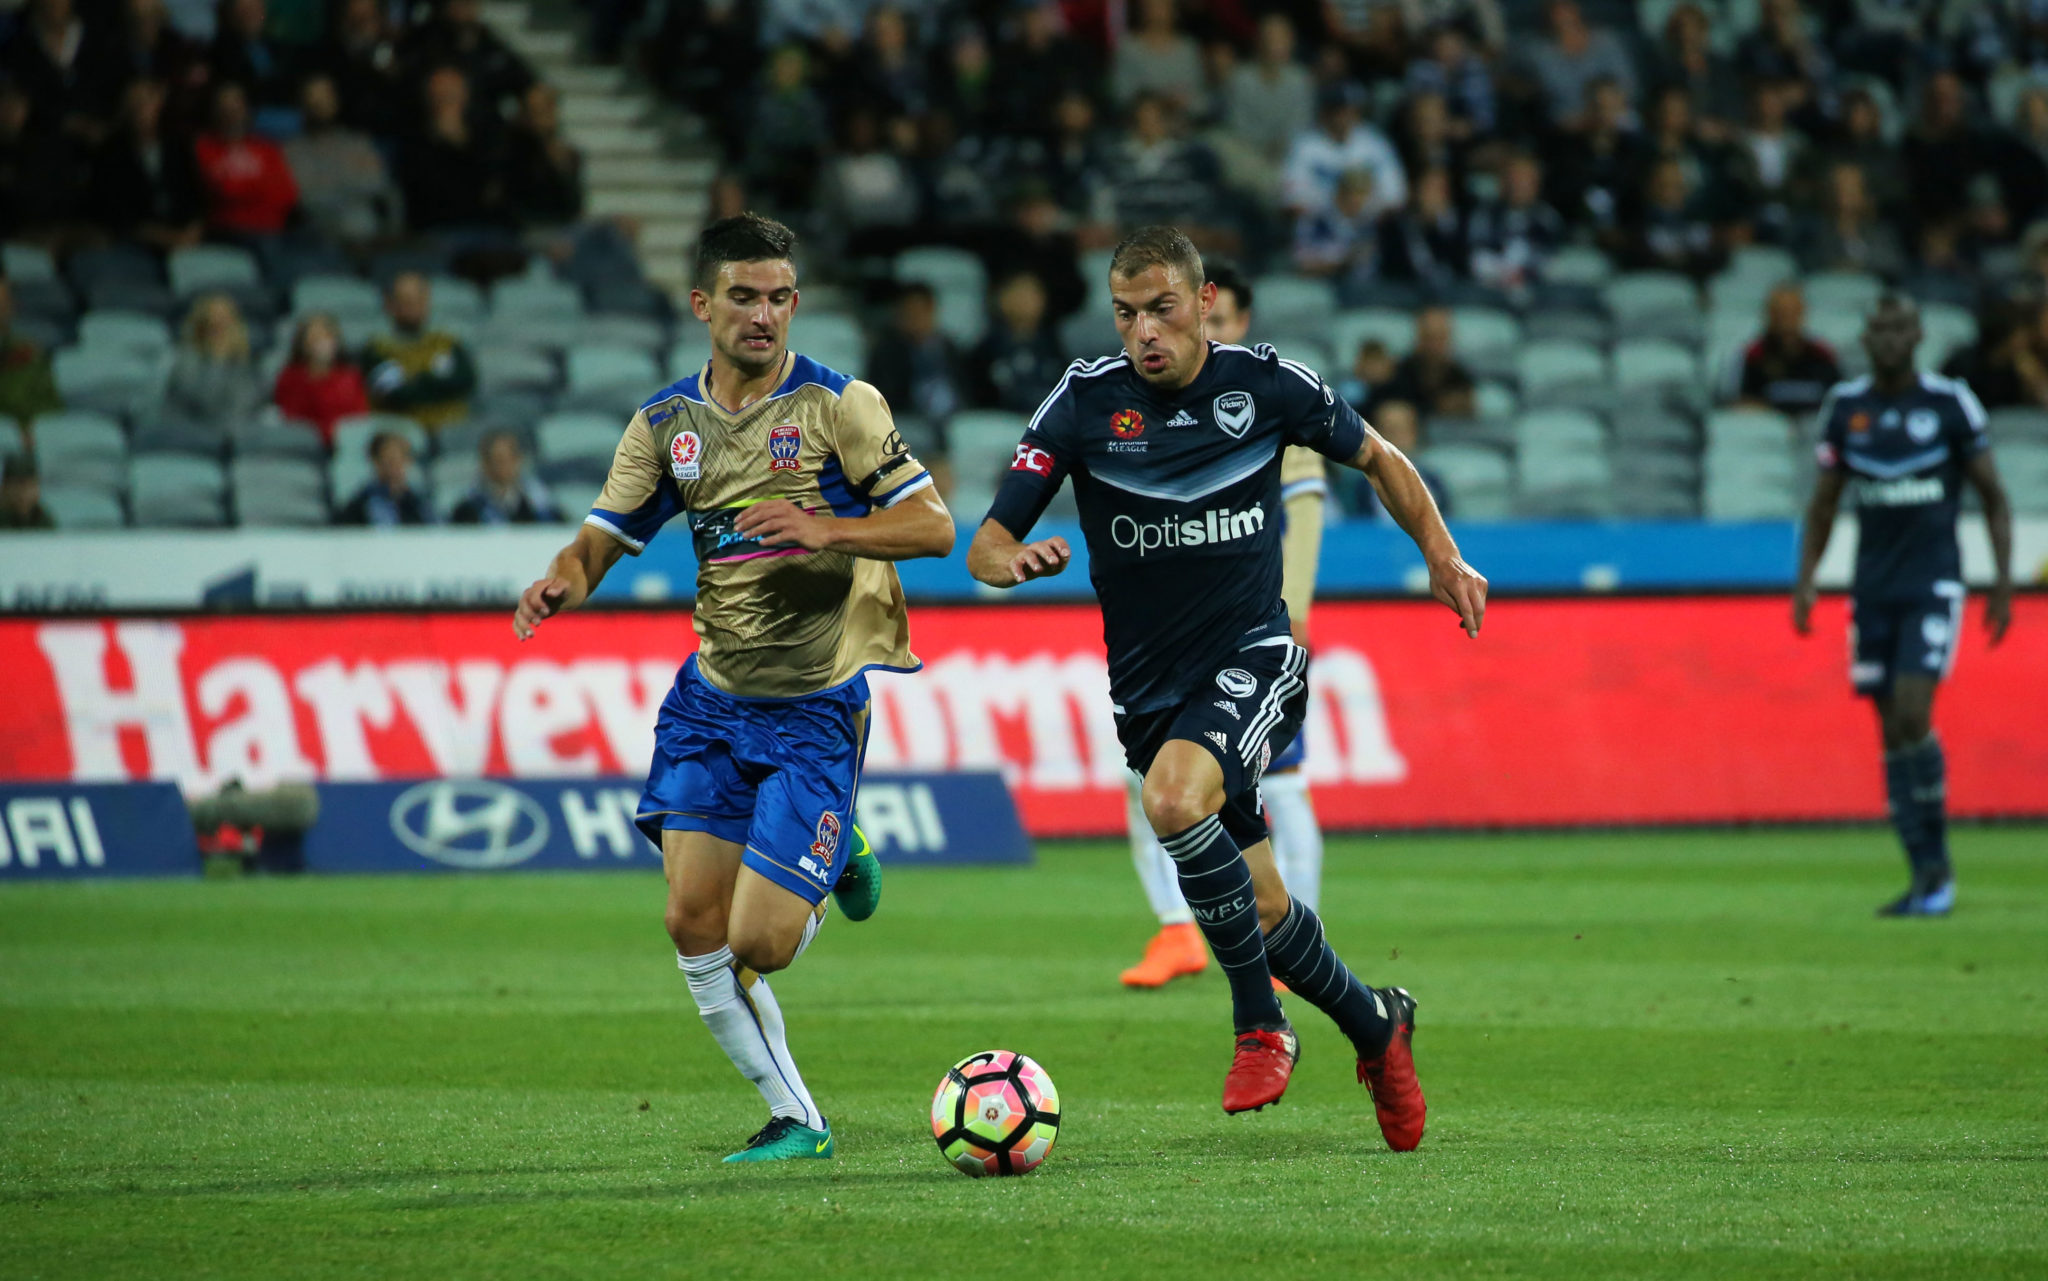 Nhận định, soi kèo Newcastle Jets vs Melbourne City – 23/03/2020